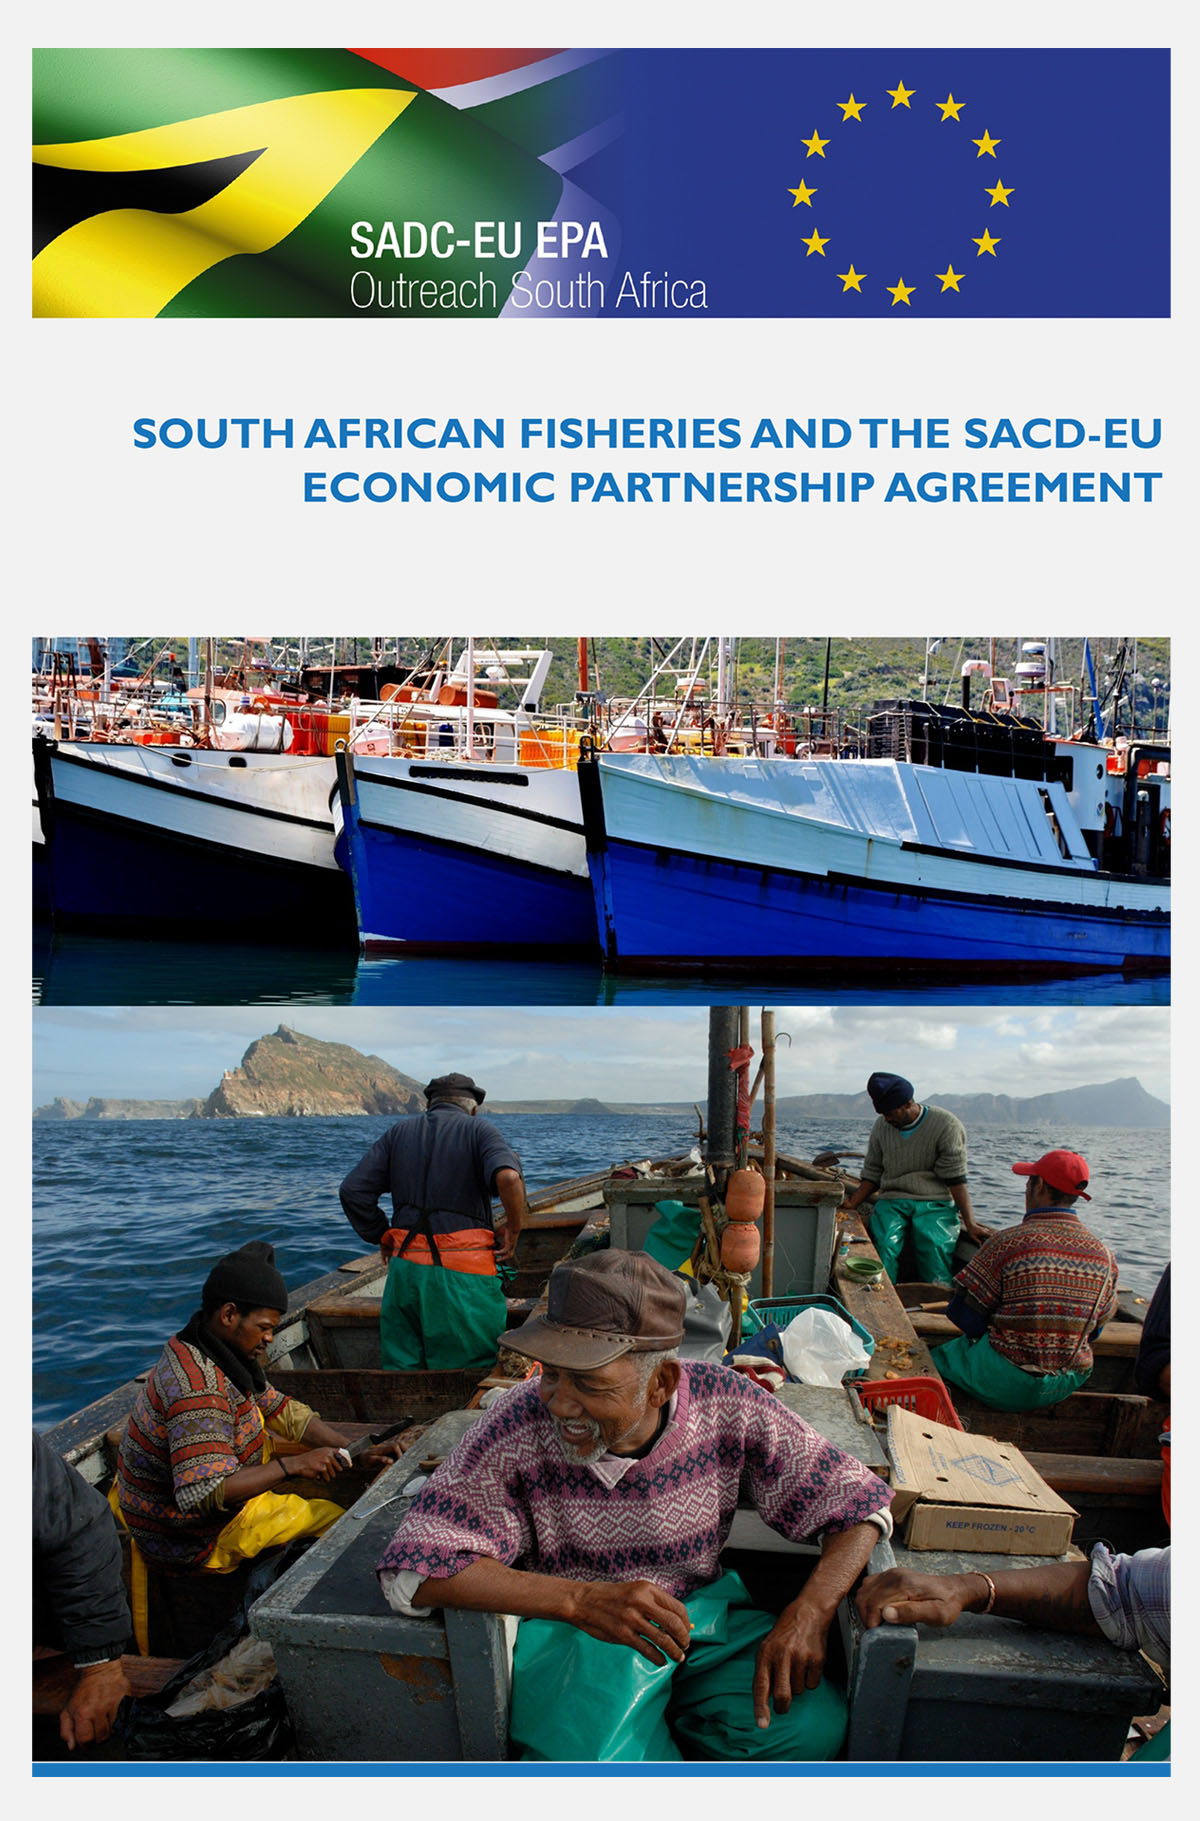 South African Fisheries and the SACD-EU EPA